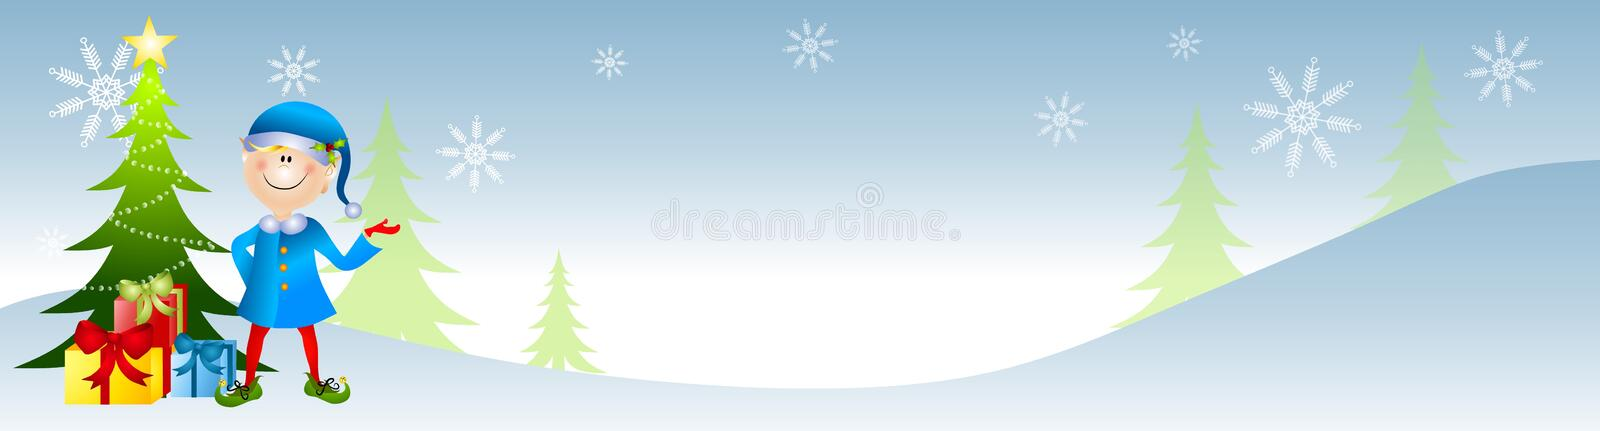 Christmas Elf Banner Royalty Free Stock Photography